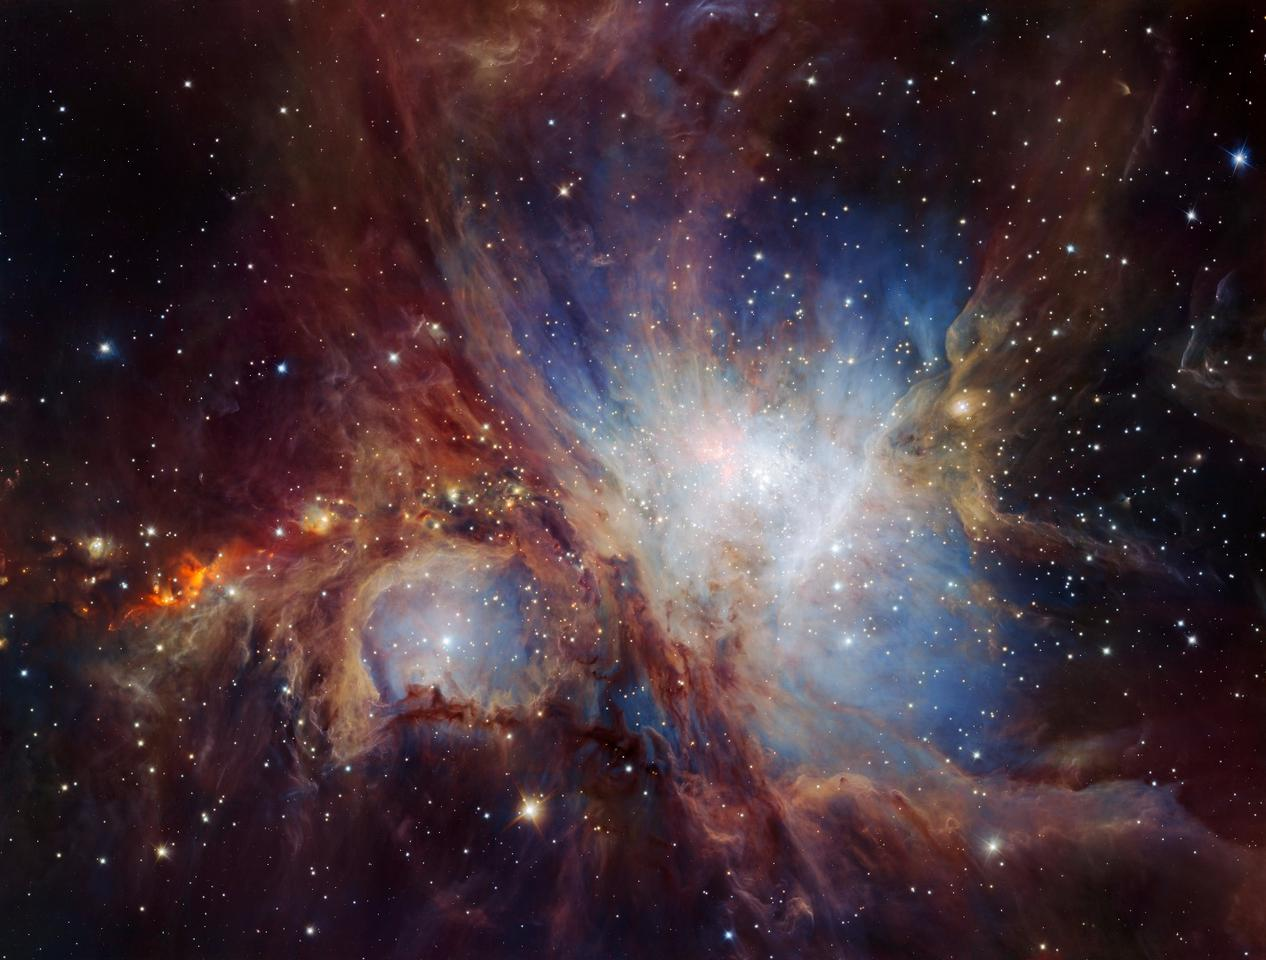 The new VLT image represents the deepest infrared view of the Orion Nebula taken so far